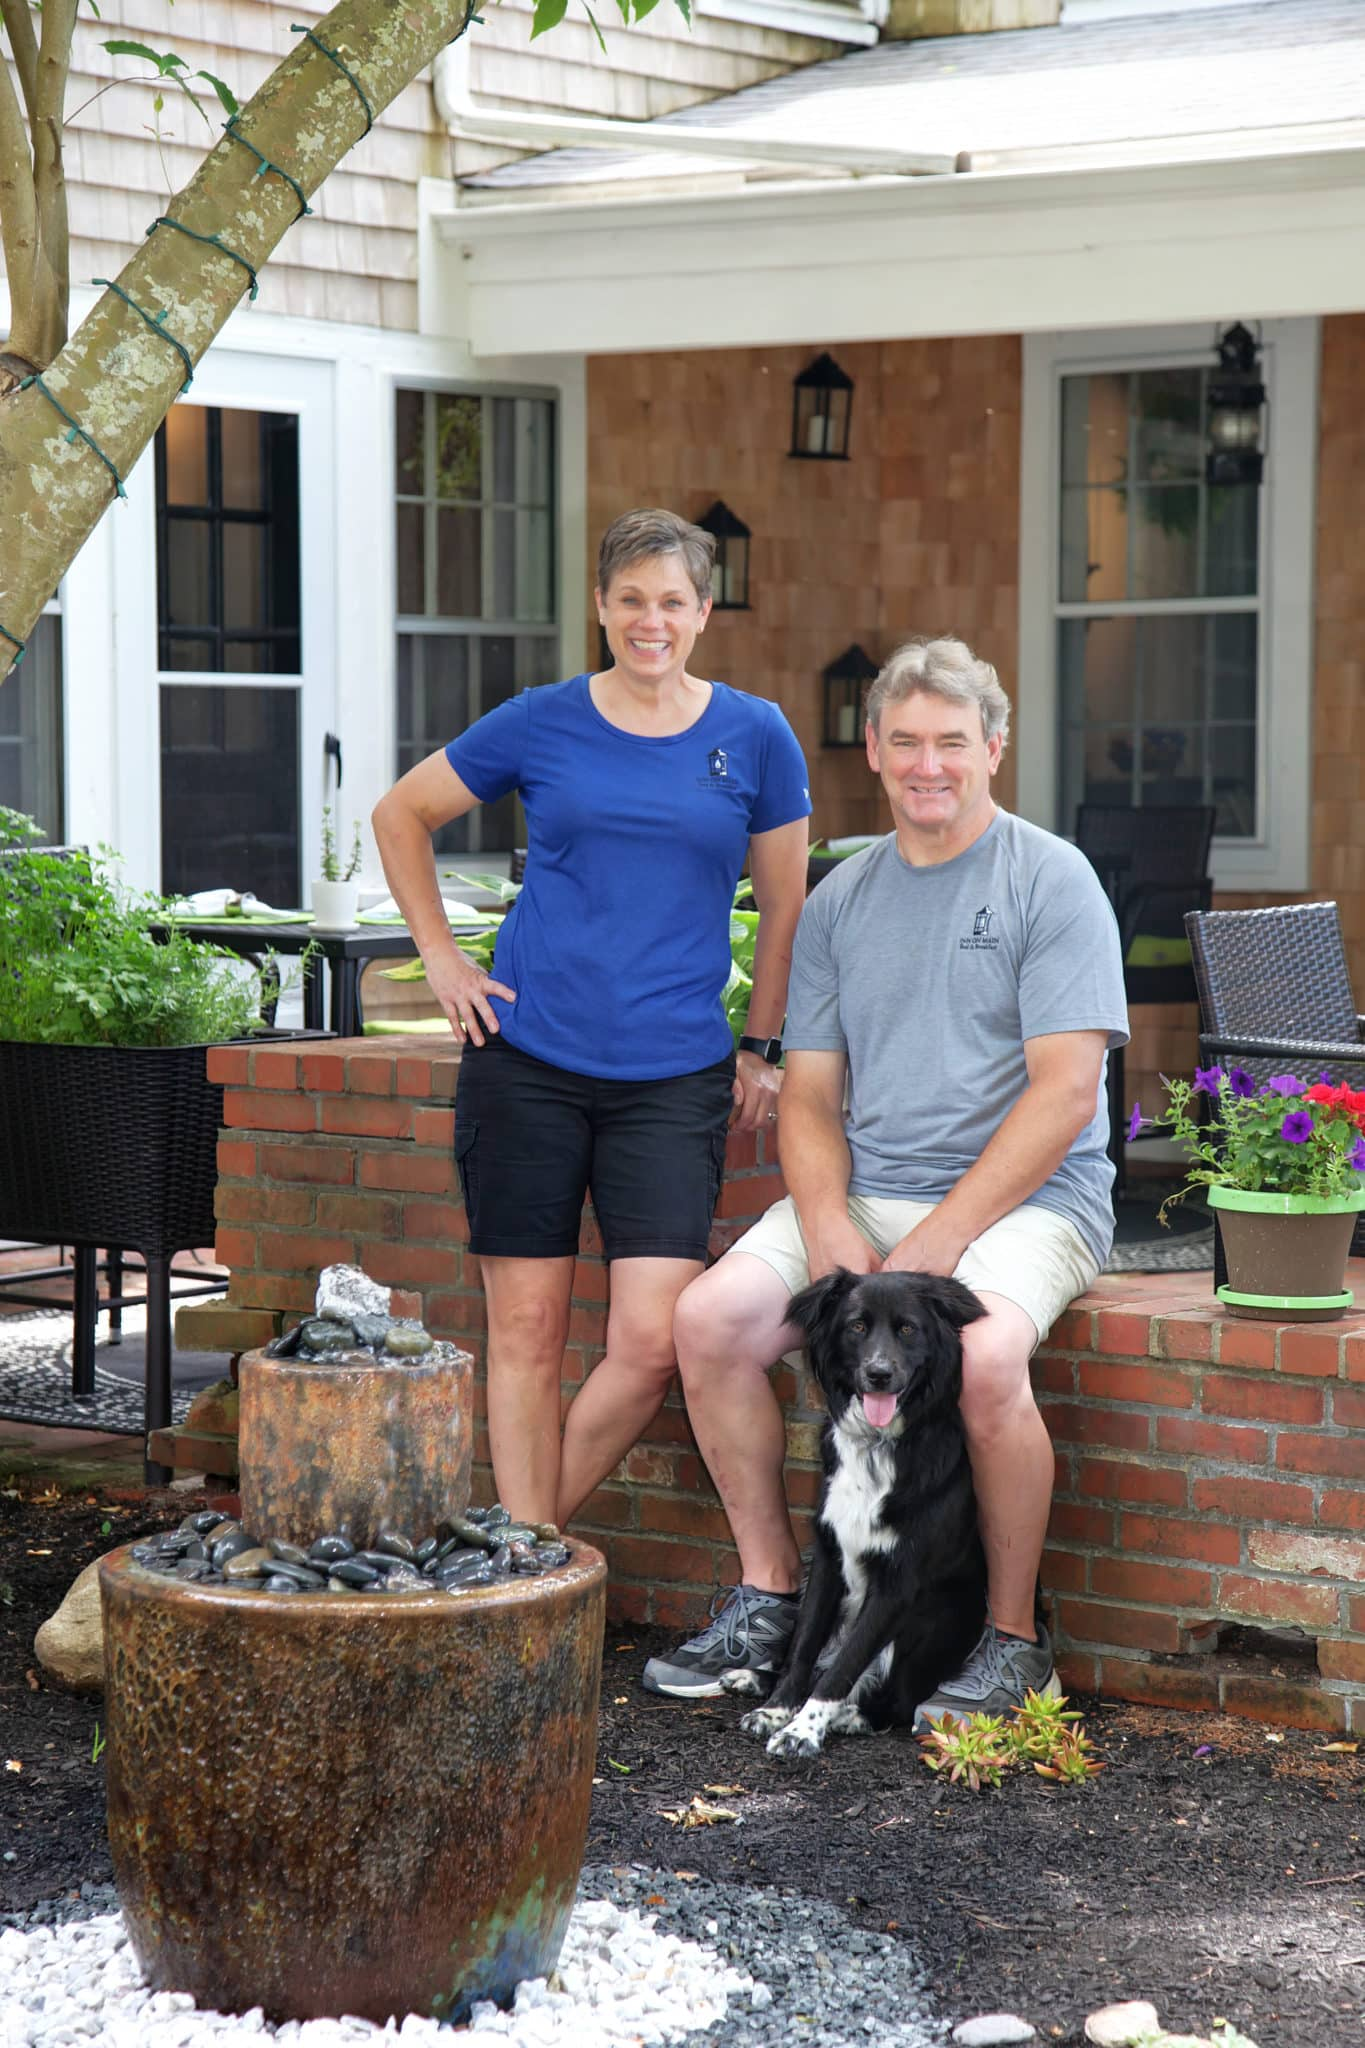 Innkeepers Sarah Bradburn, Chris Kennedy and Crocker the dog outside by the patio brick wall behind the water fountain